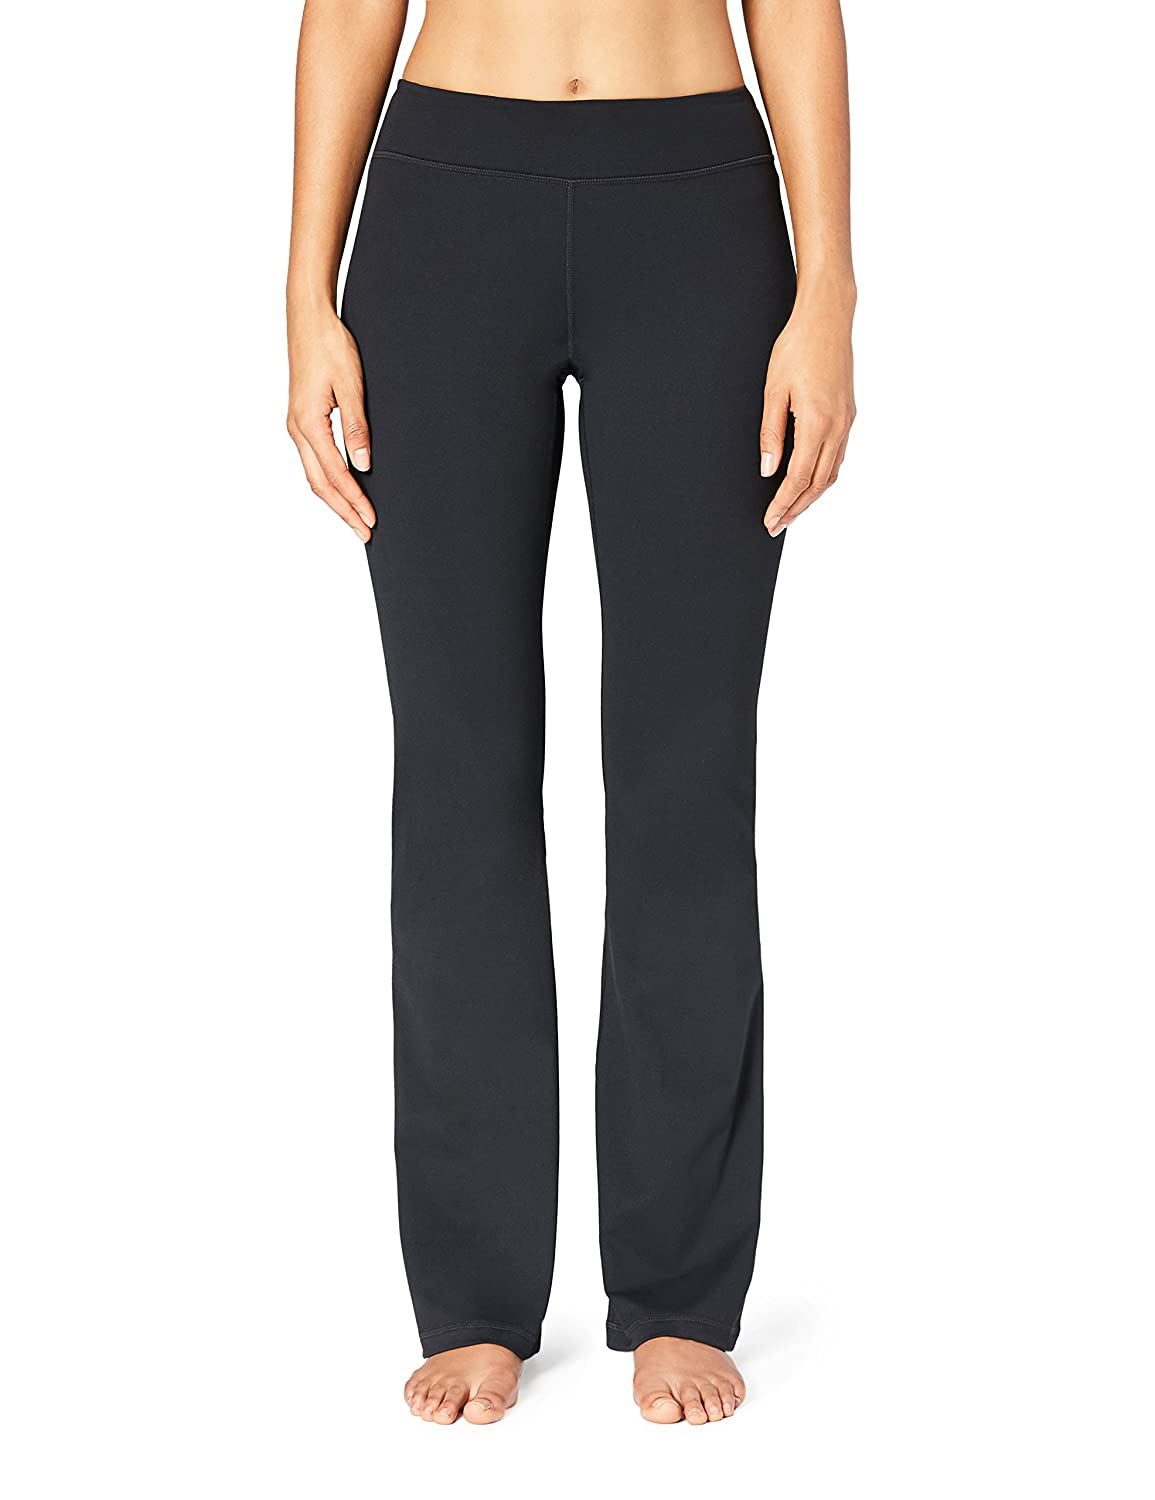 Amazon Brand - Core 10 Women's (XS-3X) 'Build Your Own' Yoga Bootcut Pant (Inseams, Waist Styles Available)